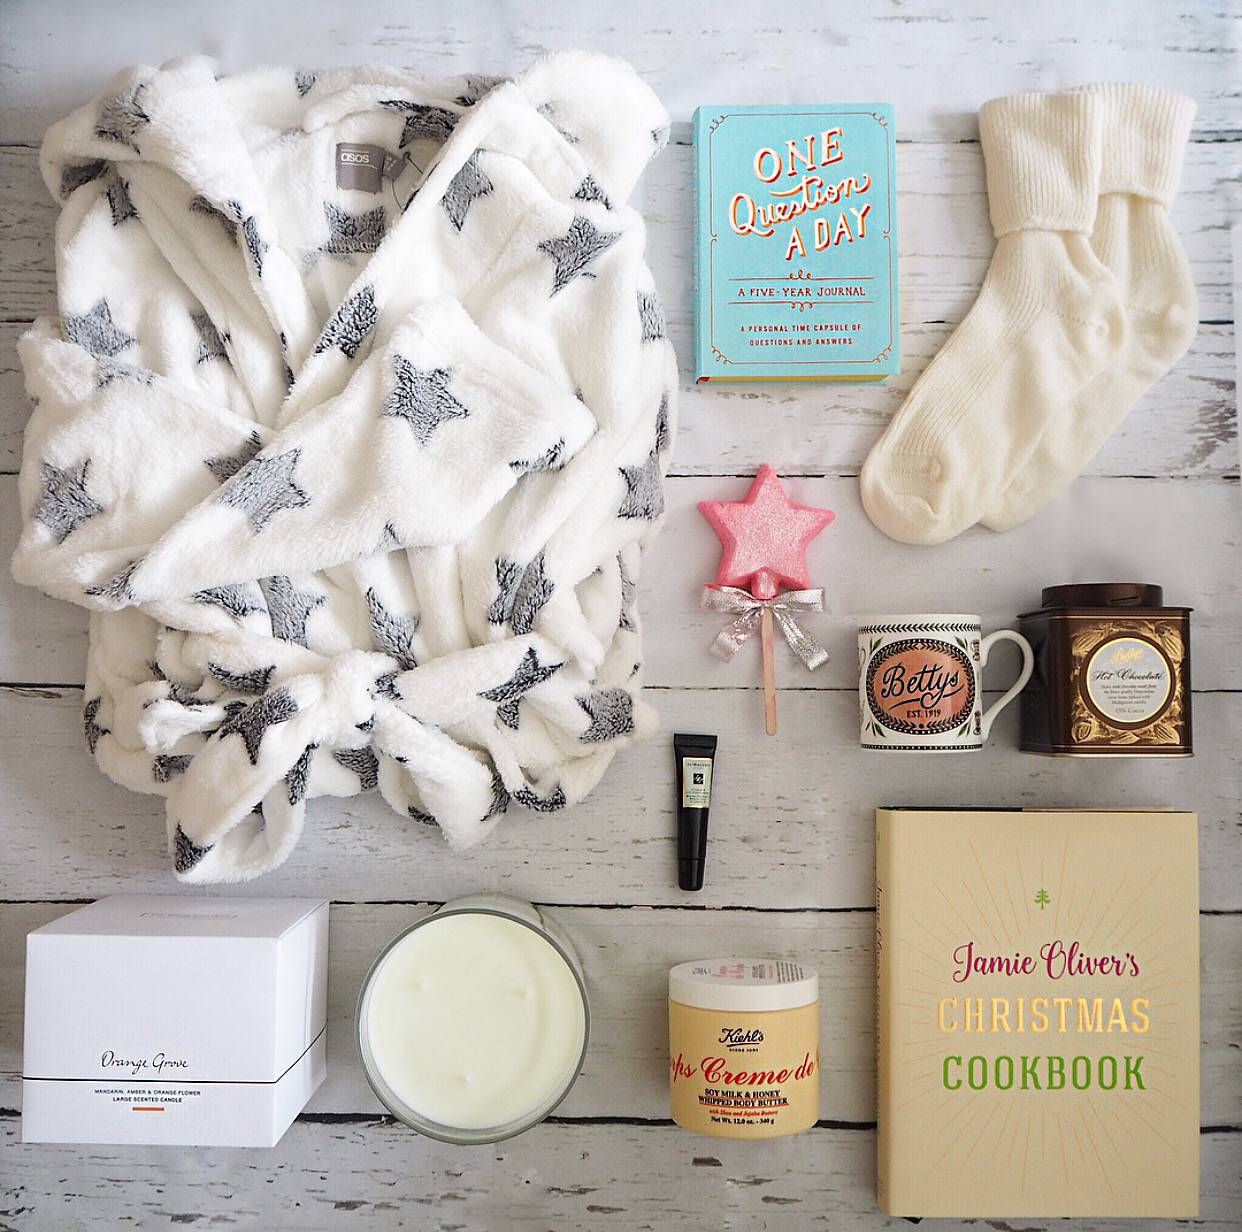 ASOS dressing gown, one question a day journal, lush star bubble wand, the white company cashmere socks, bettys hot chocolate, bettys mug, jo malone vitamin e lip conditioner, the white company orange grove candle, jamies christmas cookbook